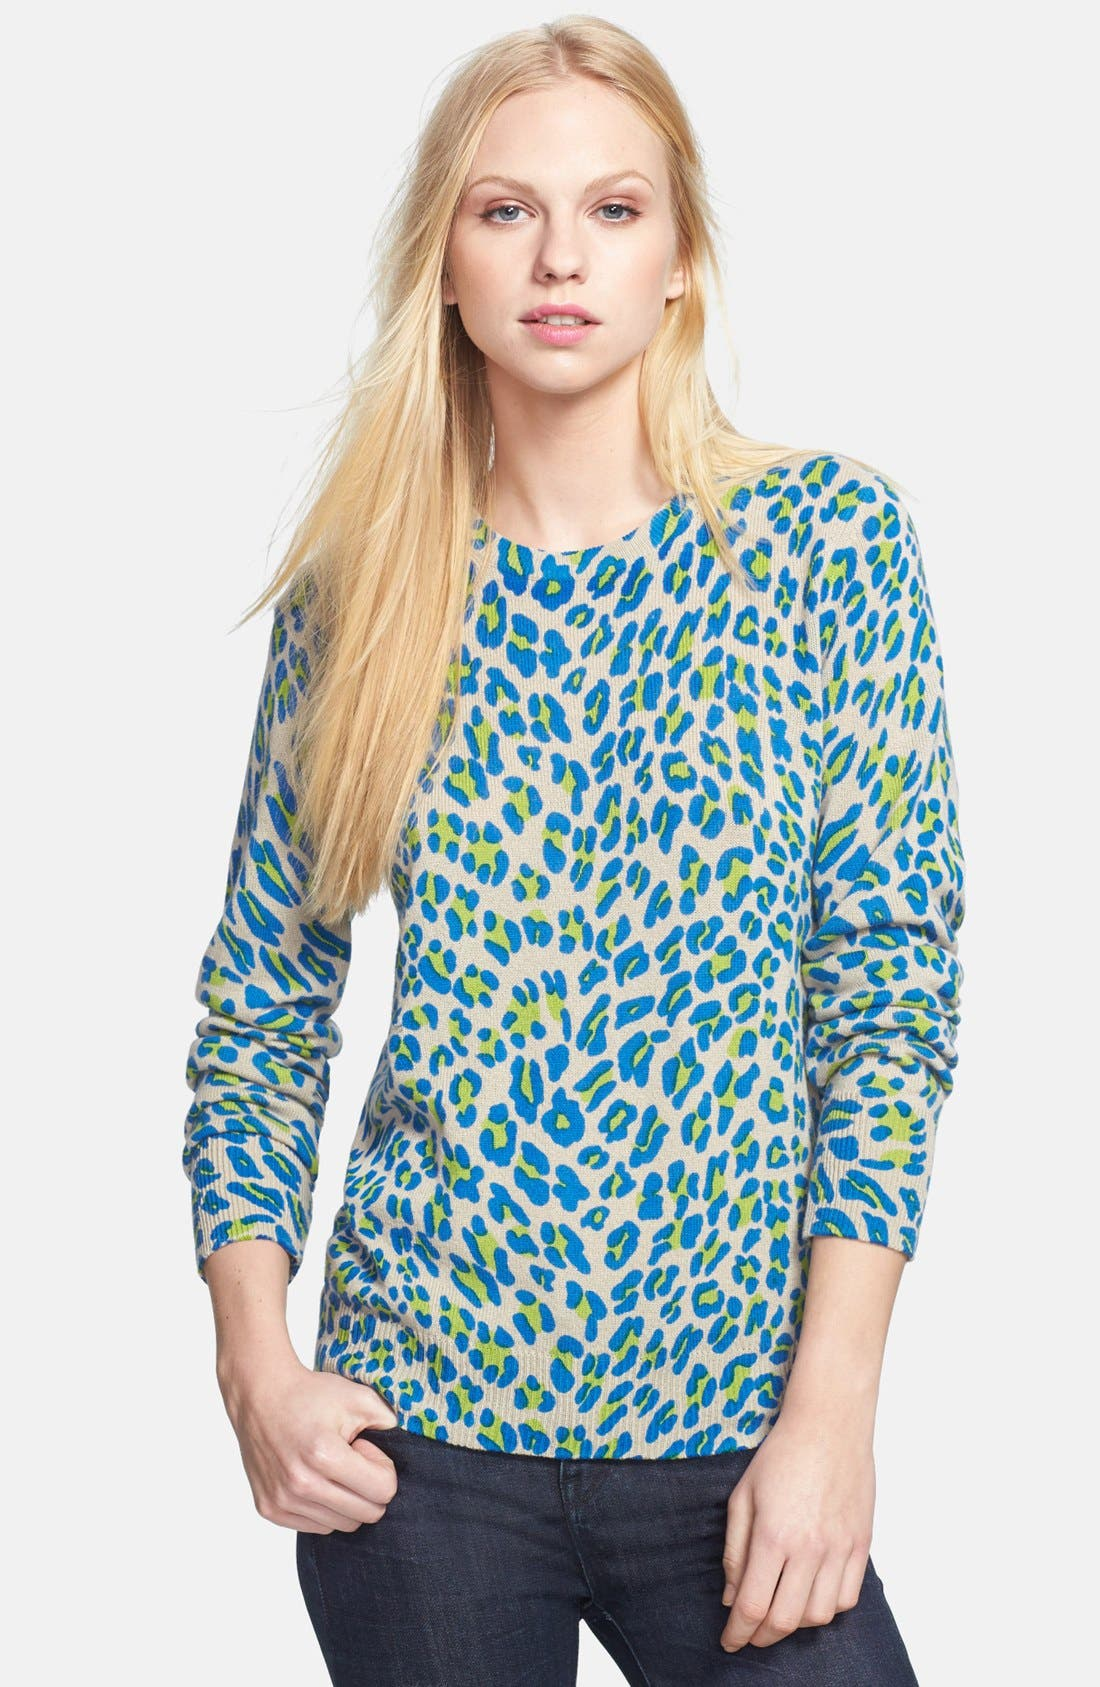 Alternate Image 1 Selected - Equipment 'Shane' Leopard Spot Cashmere Sweater